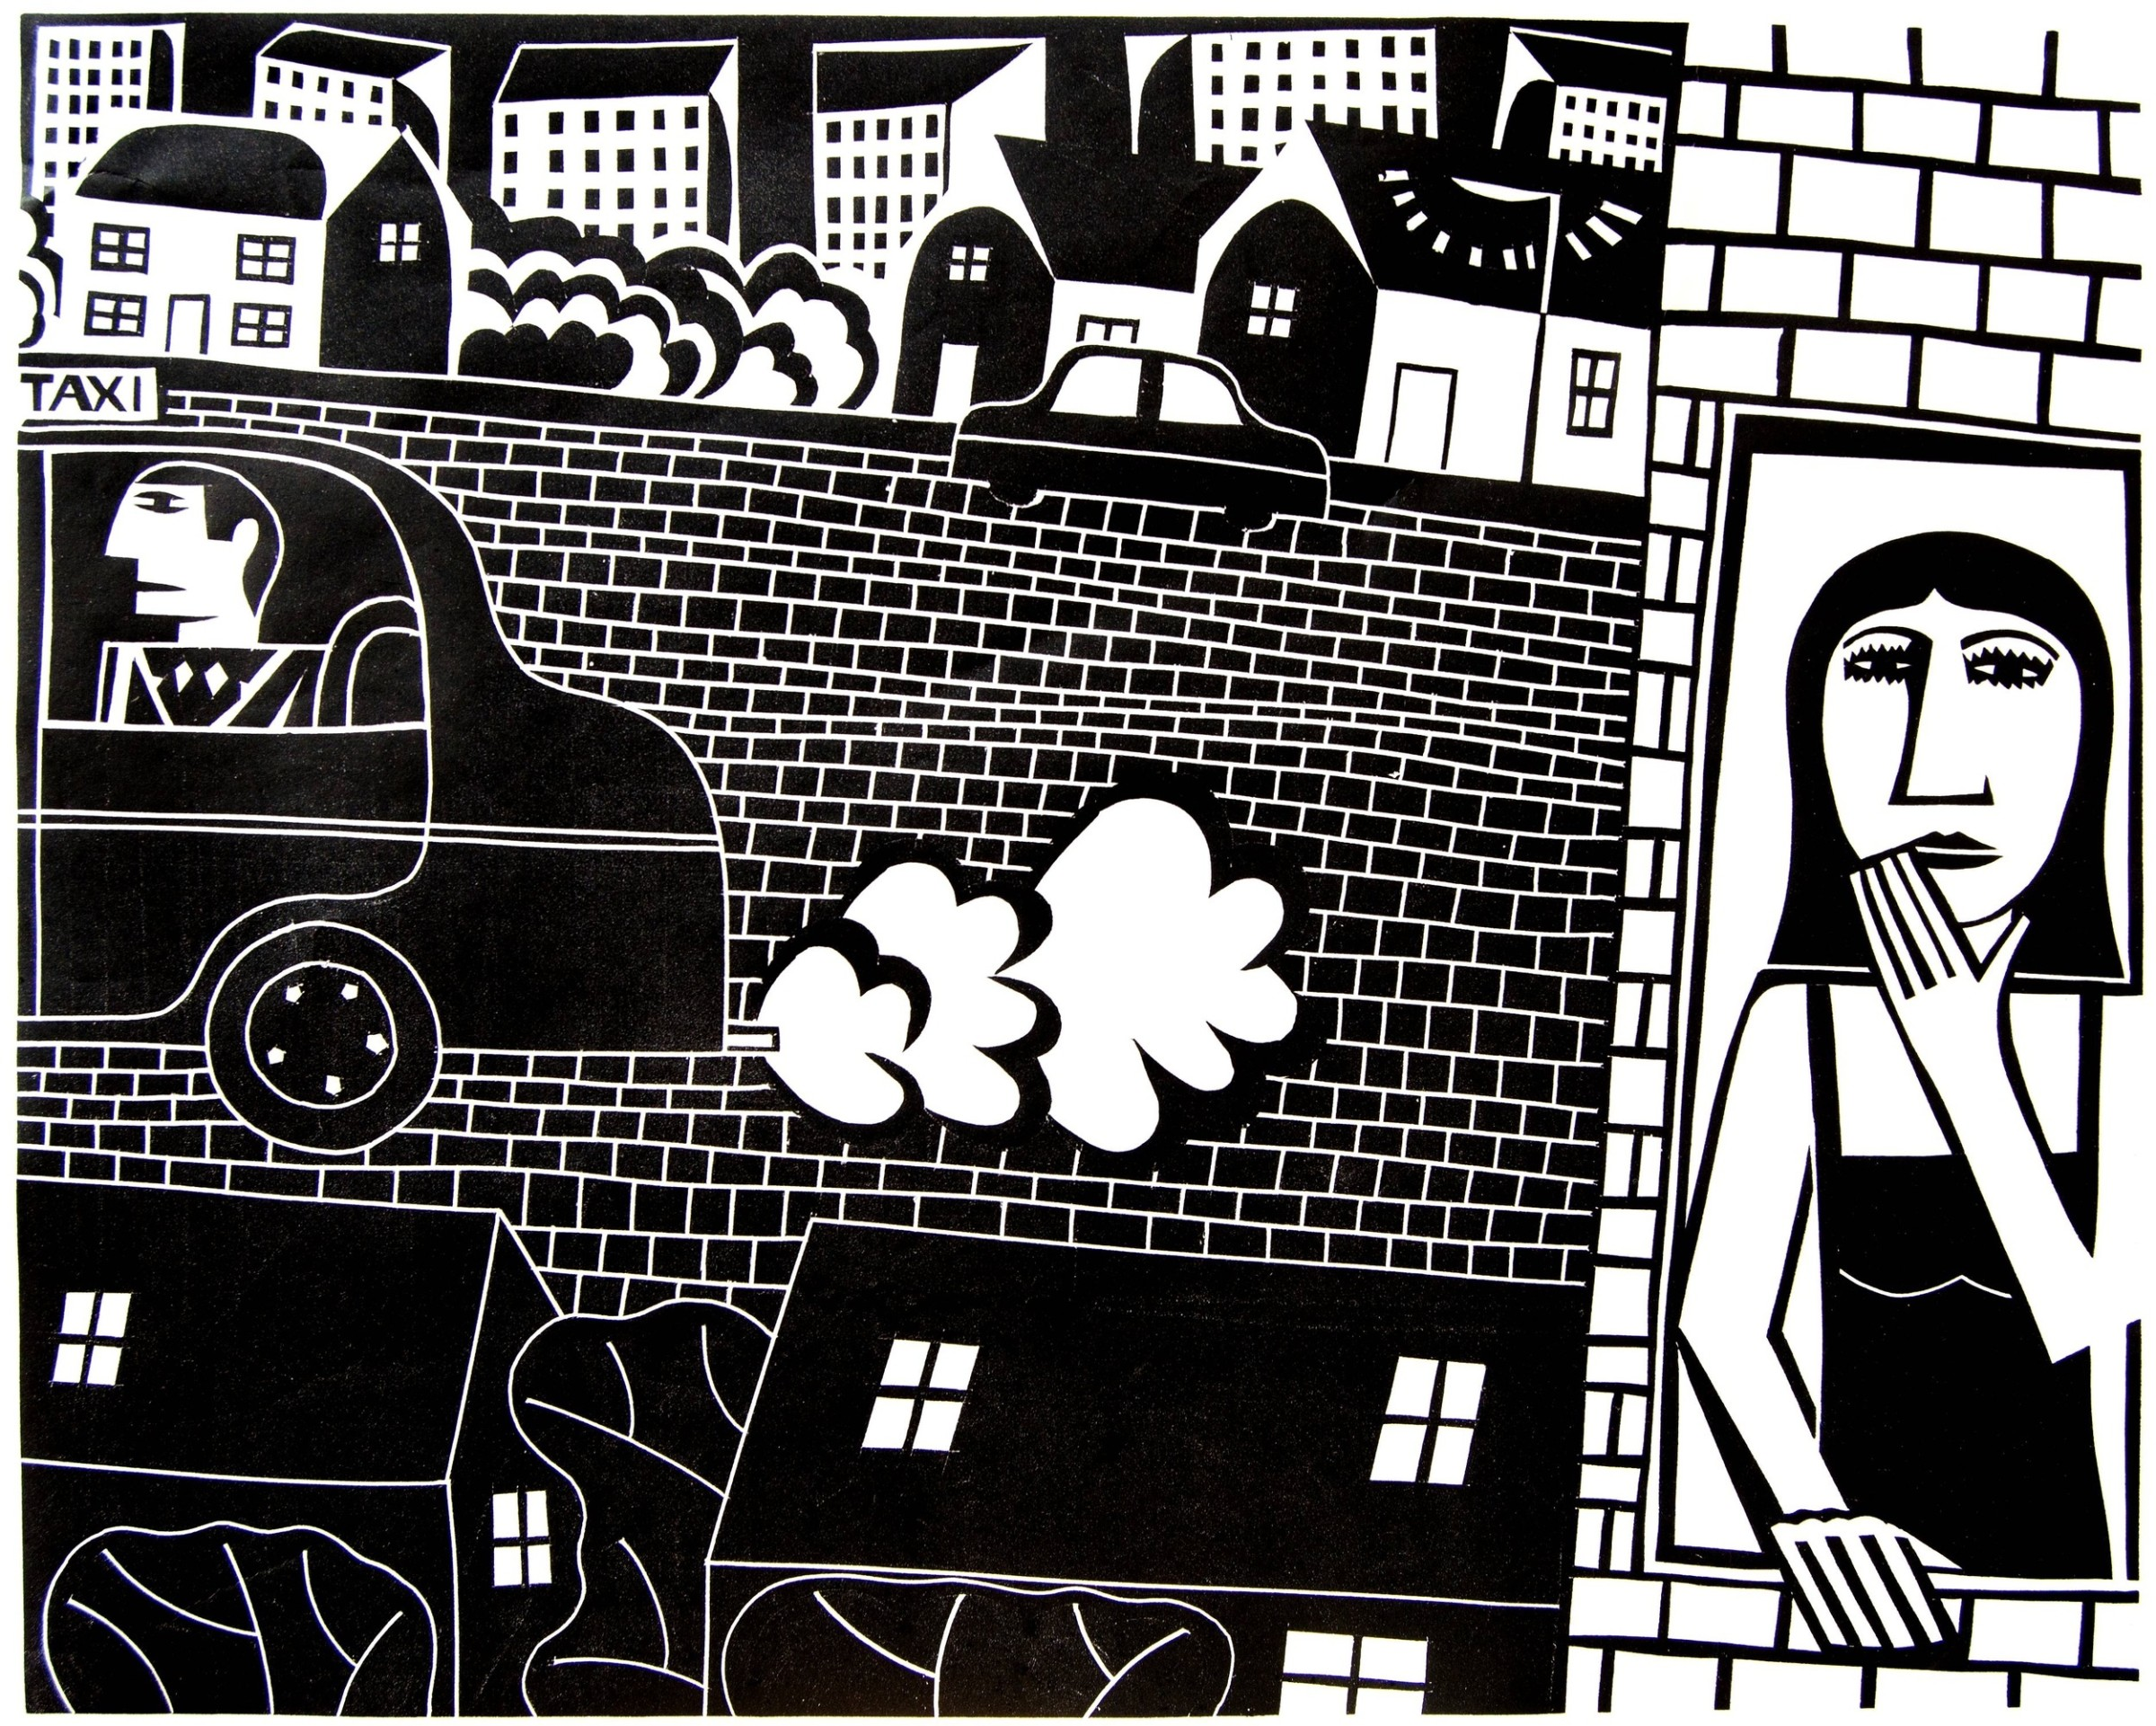 "<span class=""link fancybox-details-link""><a href=""/exhibitions/18/works/image_standalone1030/"">View Detail Page</a></span><p>Ian MacIntyre</p><p>Big Yellow Taxi</p><p>relief print</p><p>50 x 60cm</p><p>£250 framed</p><p>£220 unframed</p>"